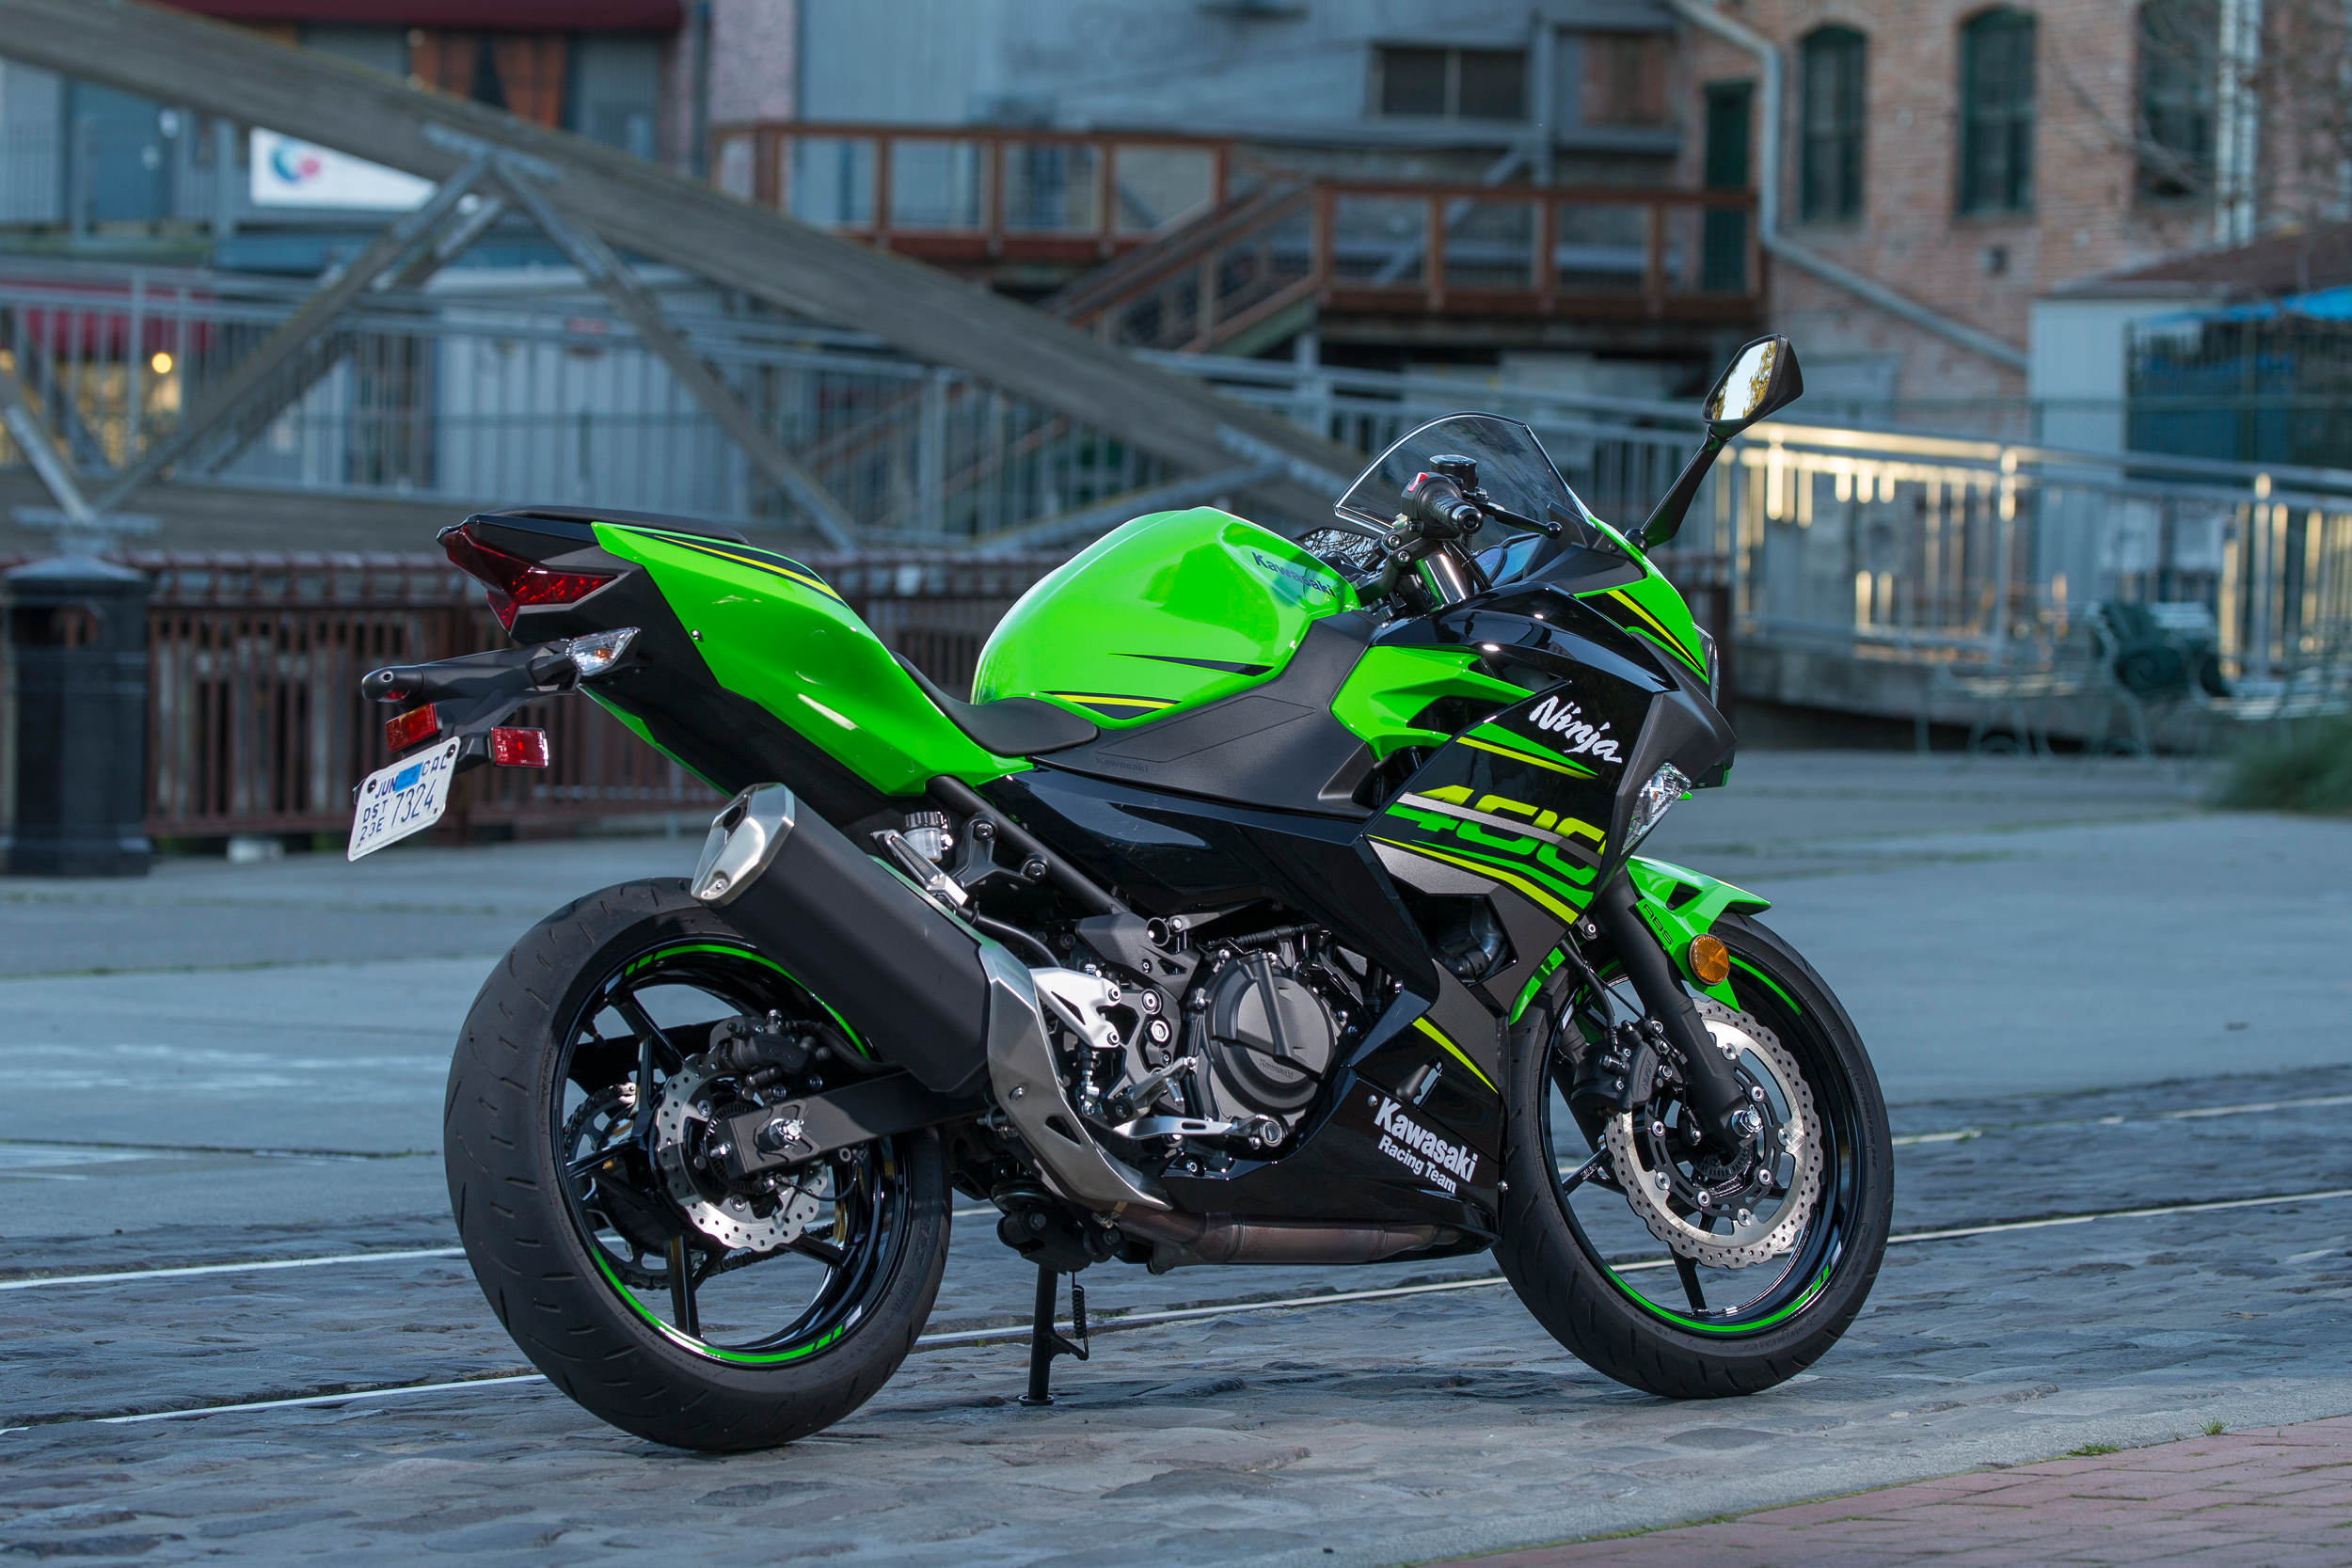 2018 Kawasaki Ninja 400 Abs Md First Ride Fitting Wiring For Brake Light Front And Rear Need Help Drz The One Finger Pull Cable Actuated Clutch Might Appeal To New Riders While Feeling Almost Too More Experienced Pilots Who Want Feel